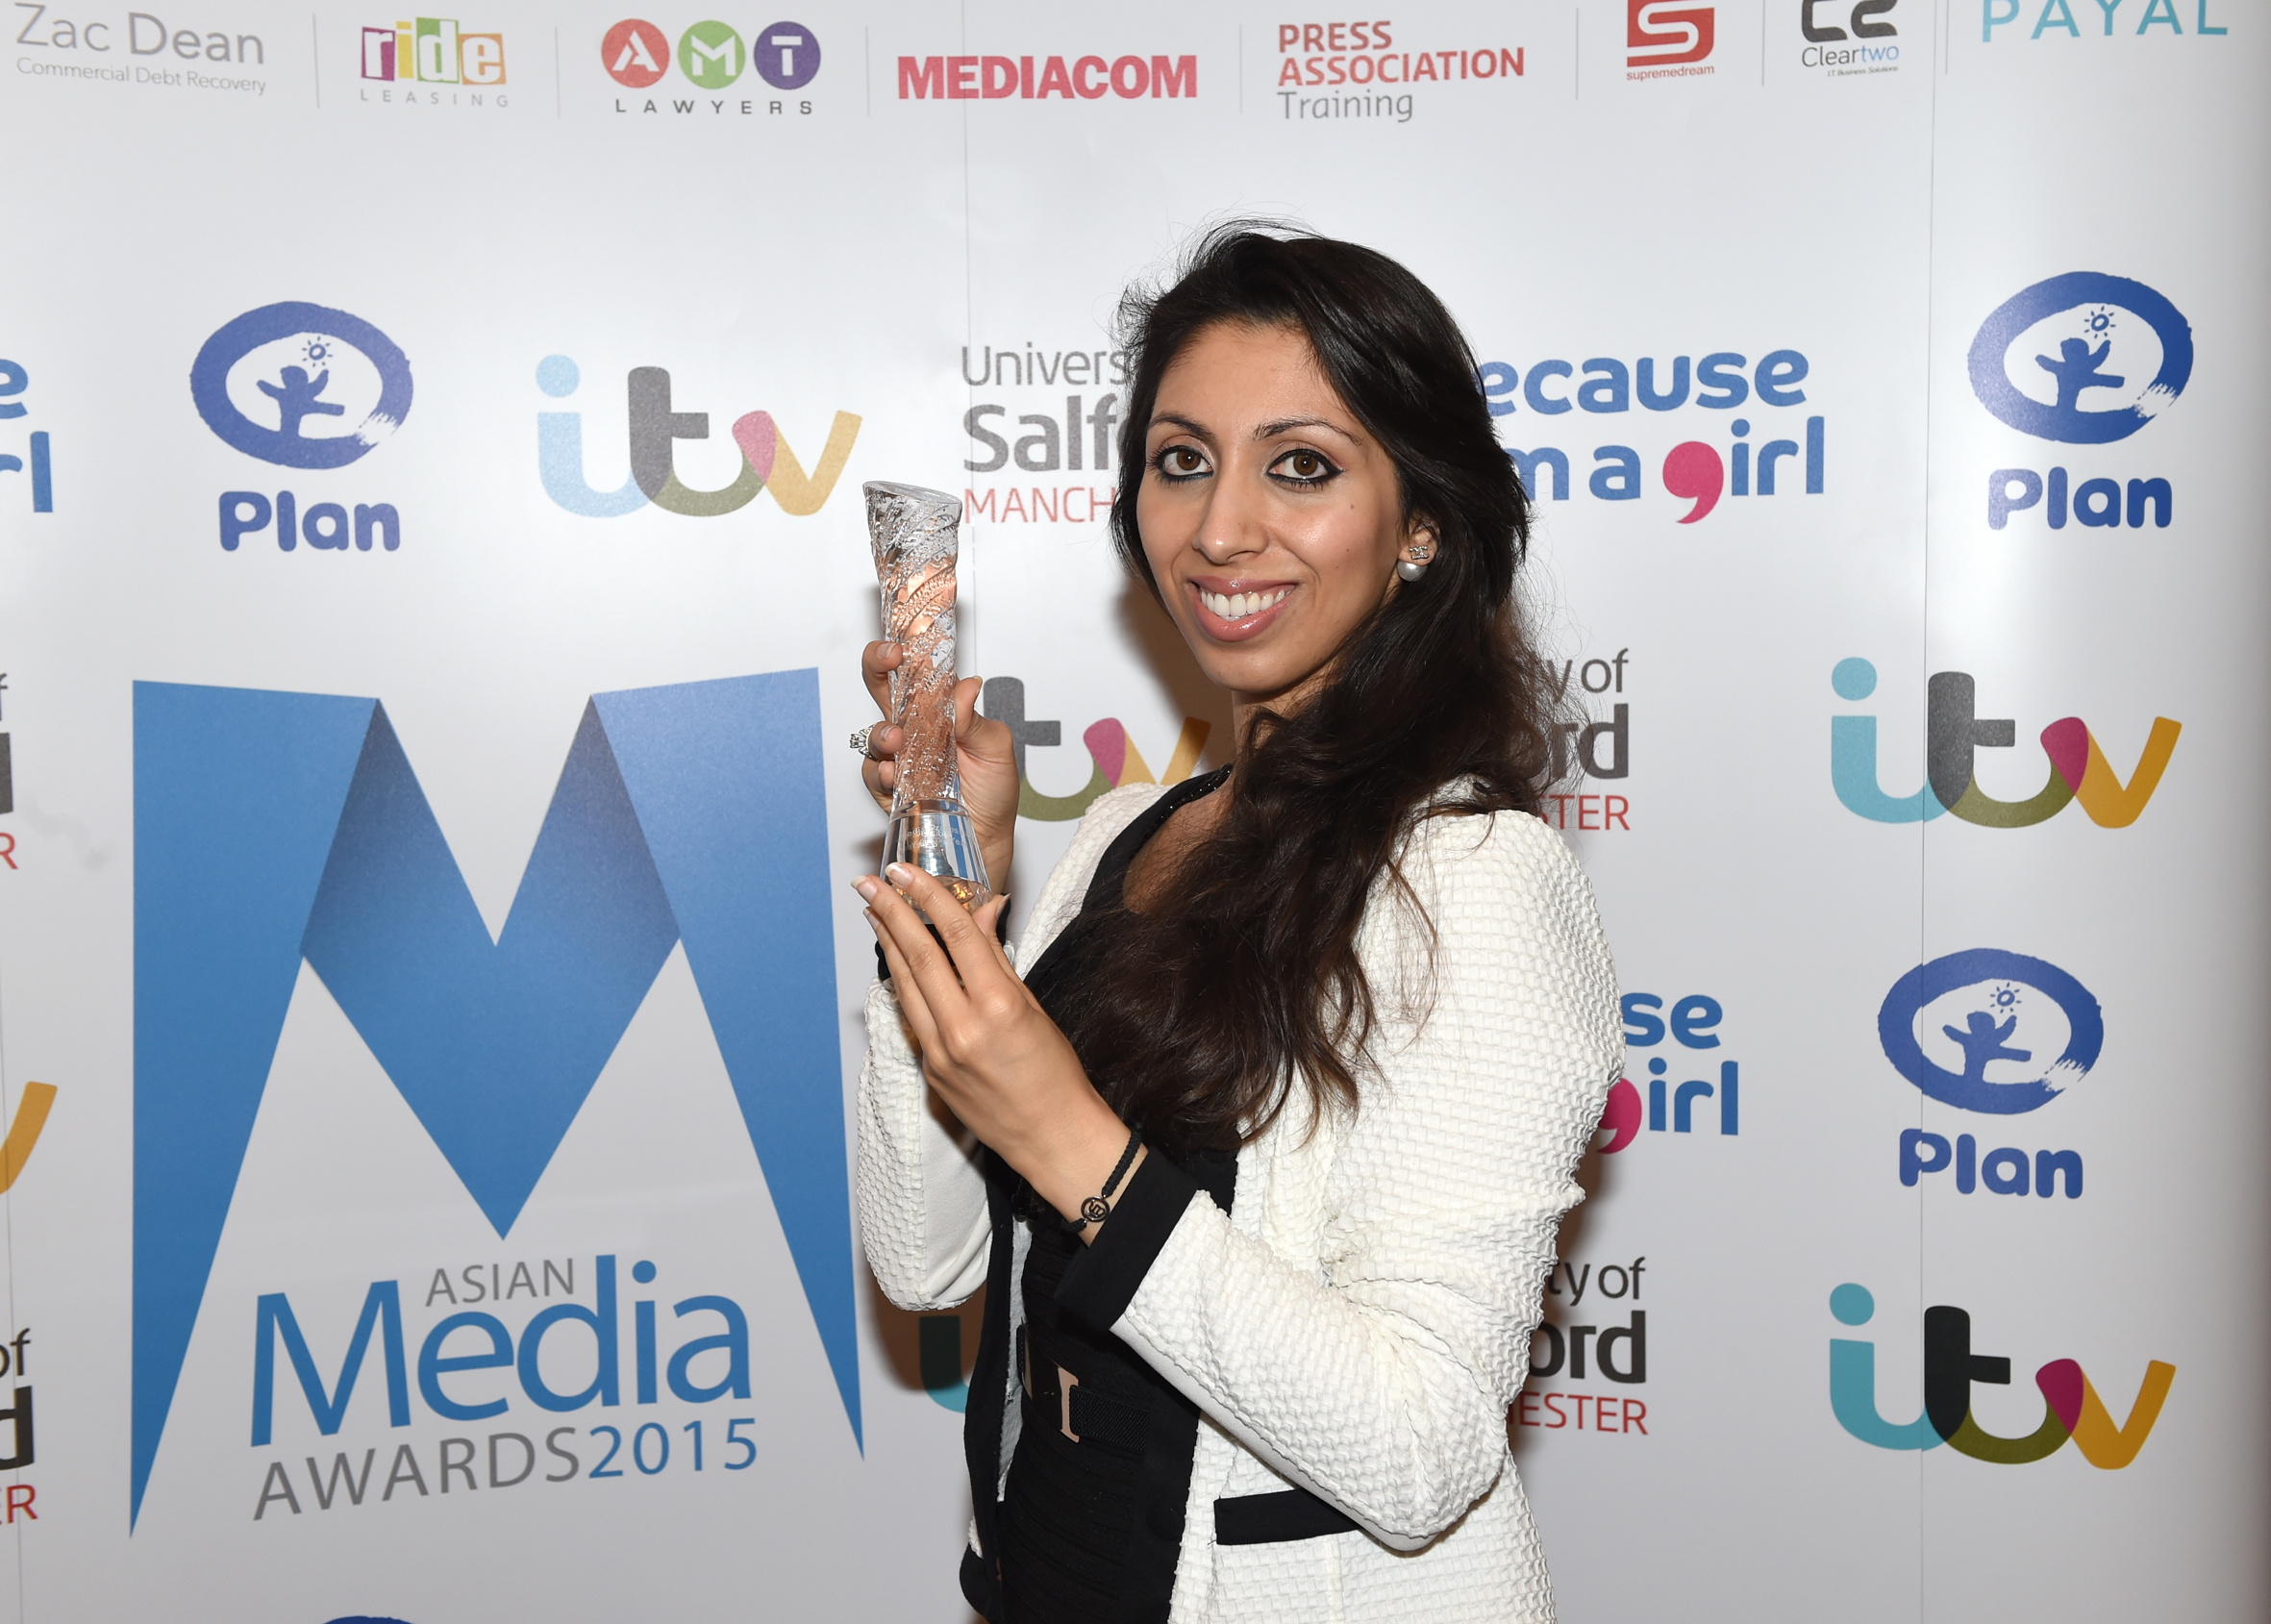 Natasha Mudhar at the Asian Media Awards.